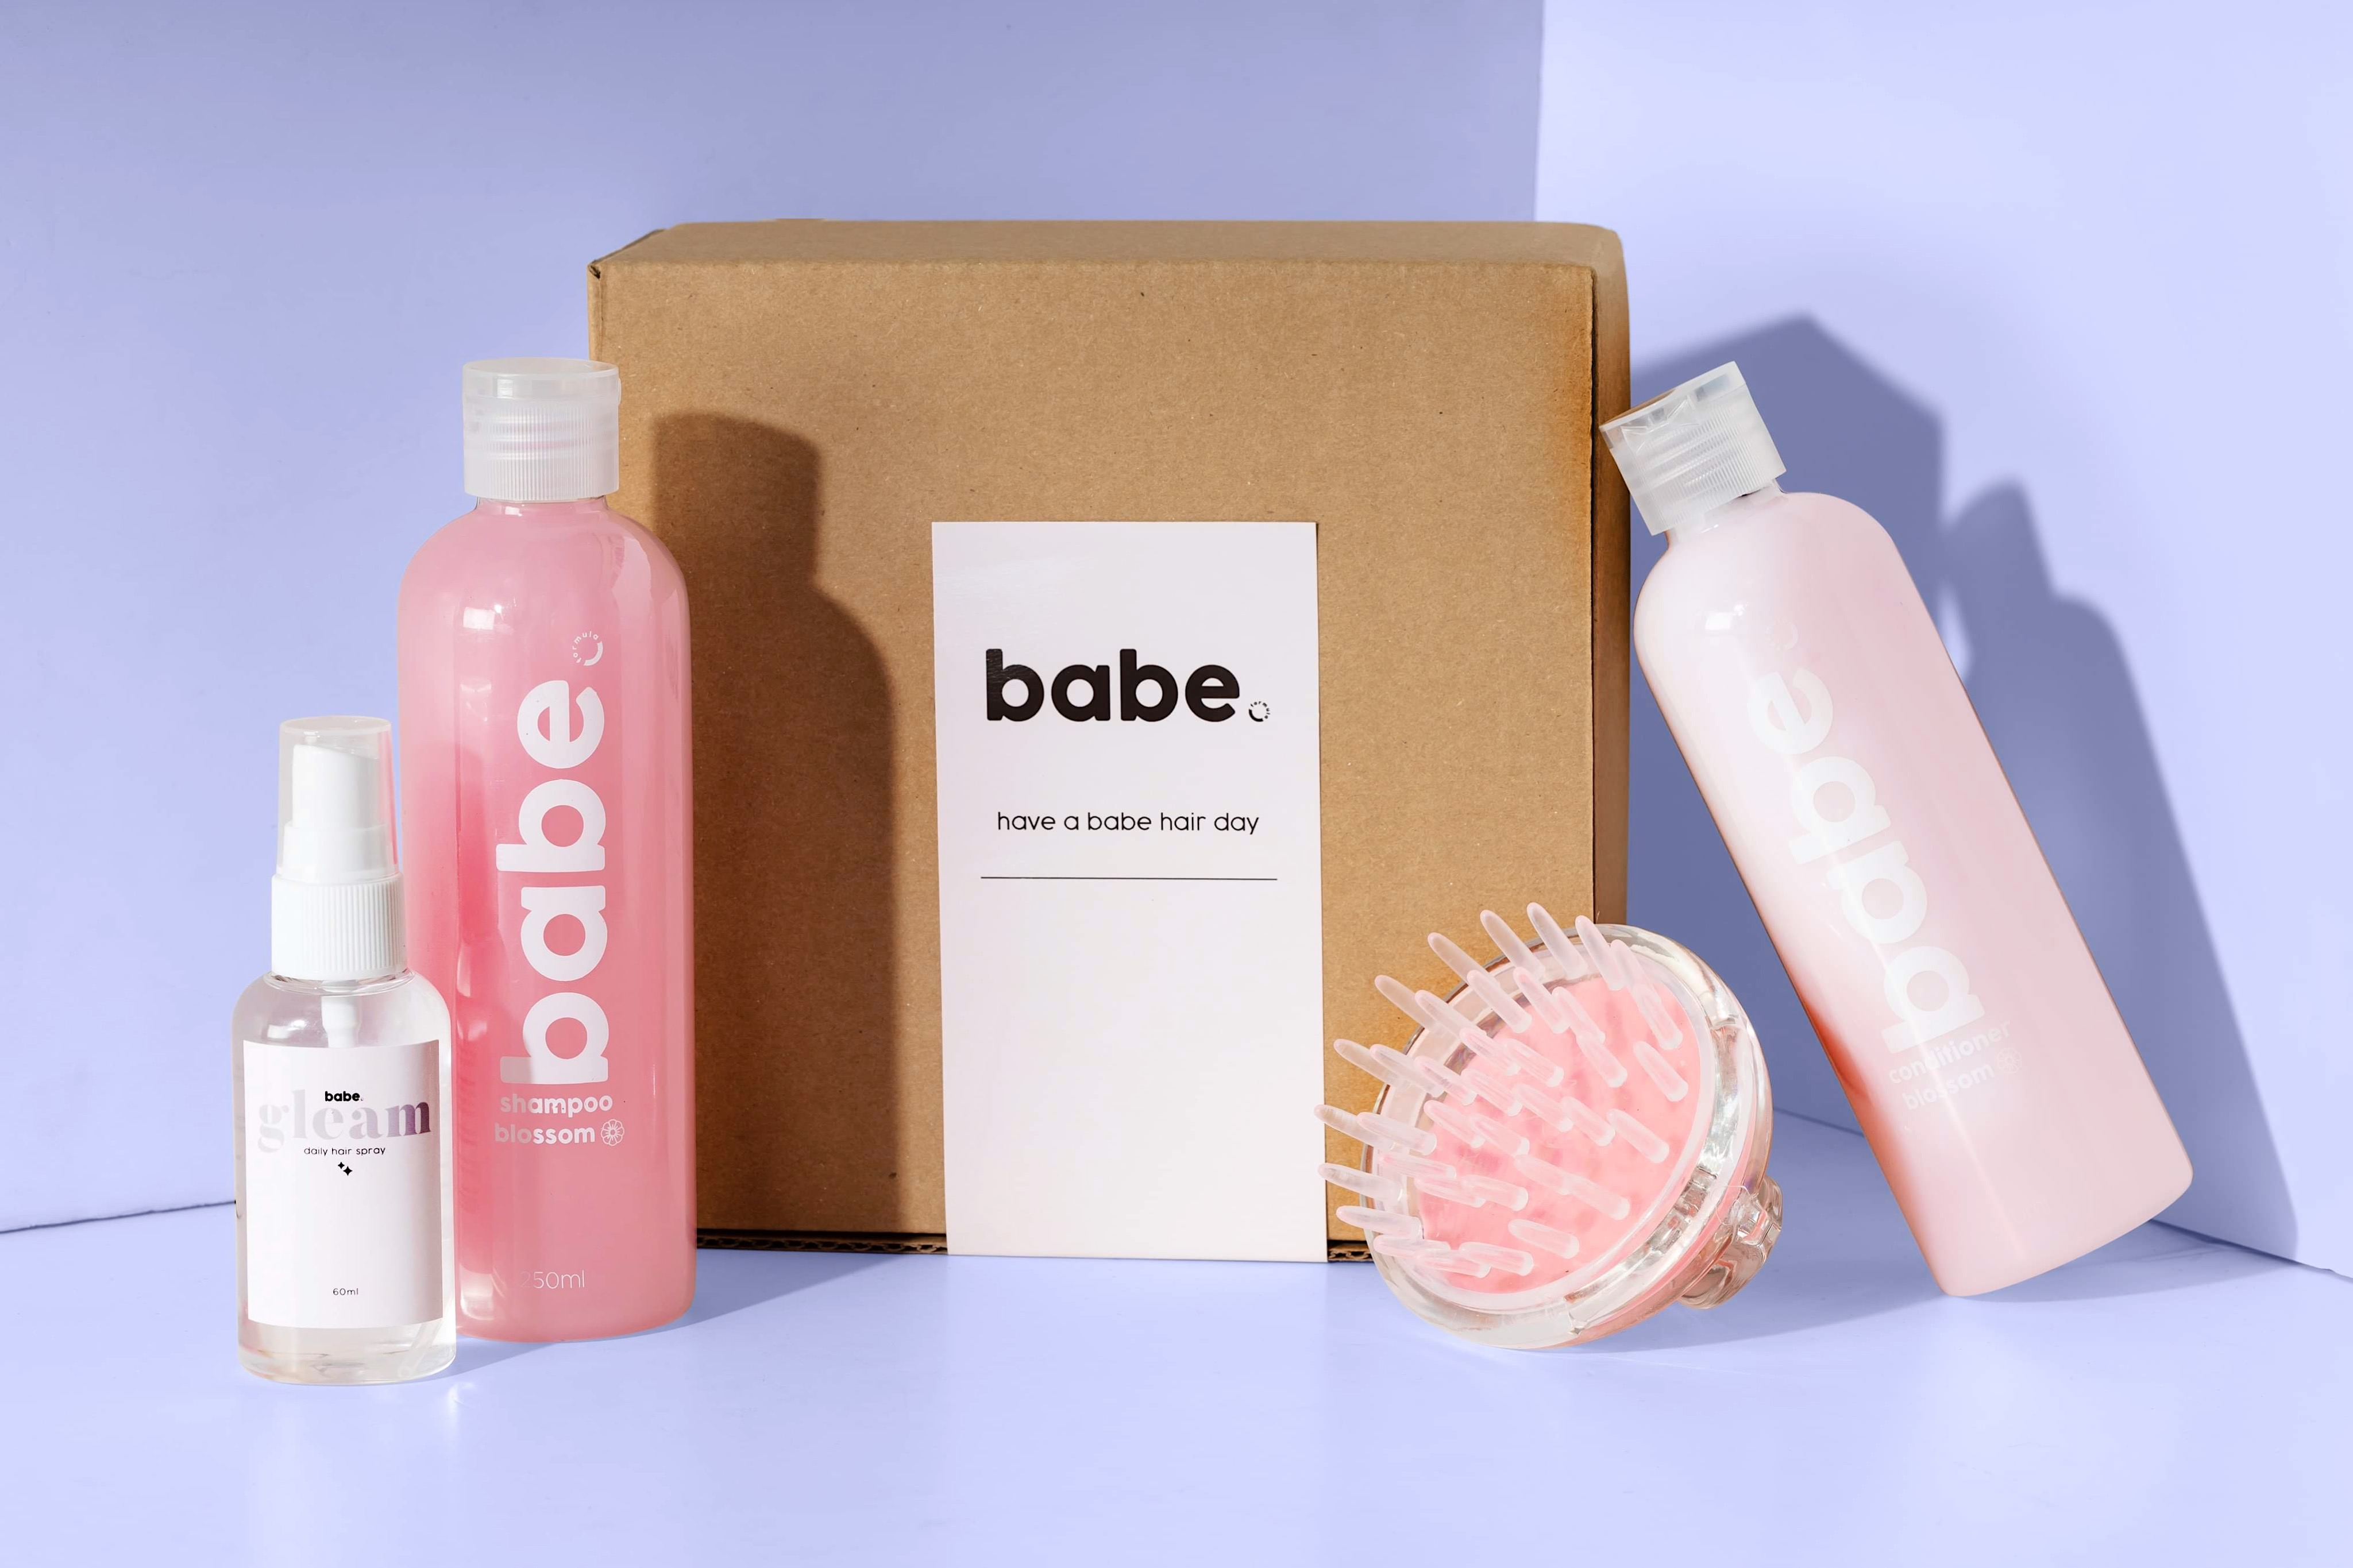 This has been an incredible game-changer for Babe Formula! Thanks to micro-influencers and their endorsements, you may have seen Babe Formula products on our social media feeds.